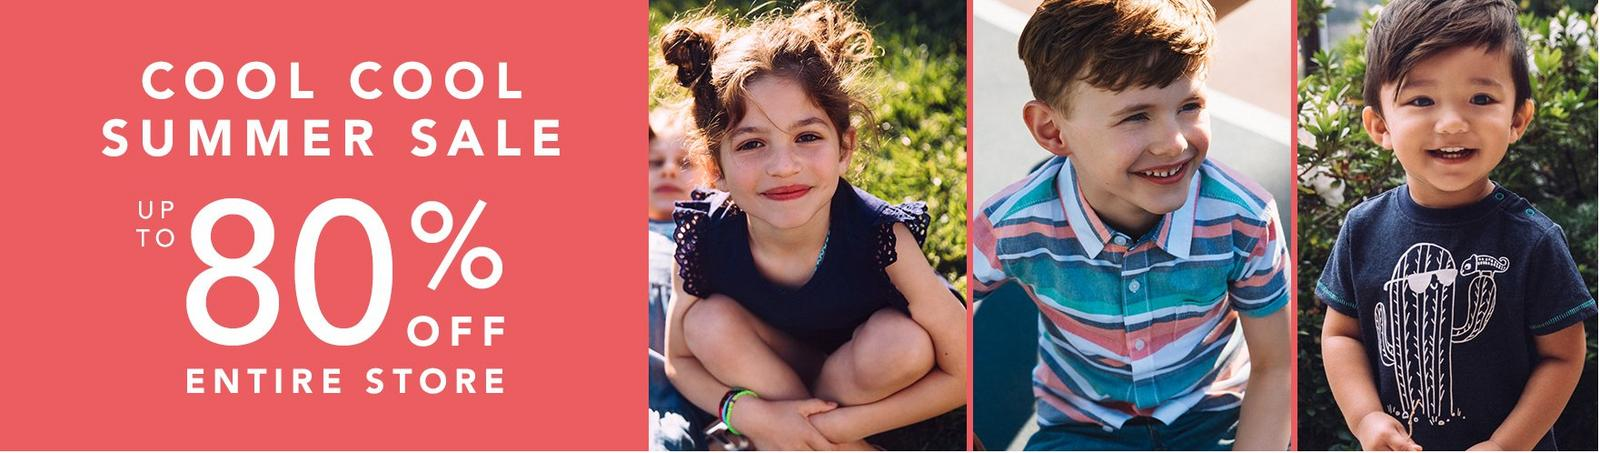 Stock Up and Save With The Gymboree Summer Sale Up To 80% Off!